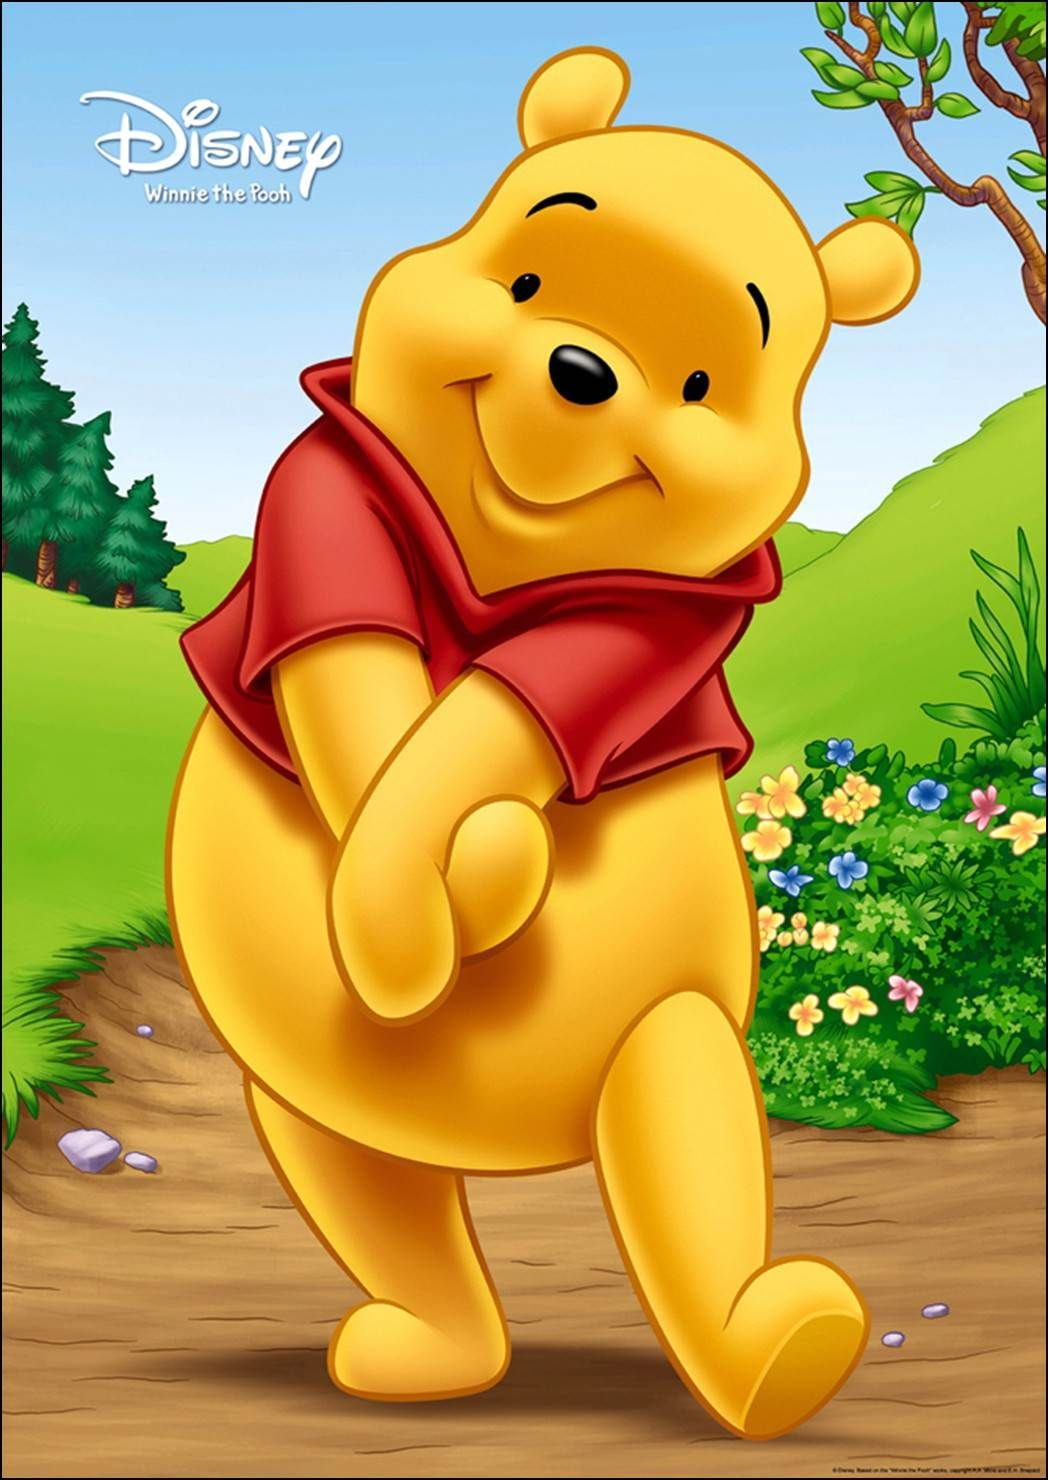 Cute winnie the pooh wallpaper download cute winnie the pooh 1920 cute winnie the pooh wallpaper download cute winnie the pooh 19201200 wallpaper winnie the voltagebd Images